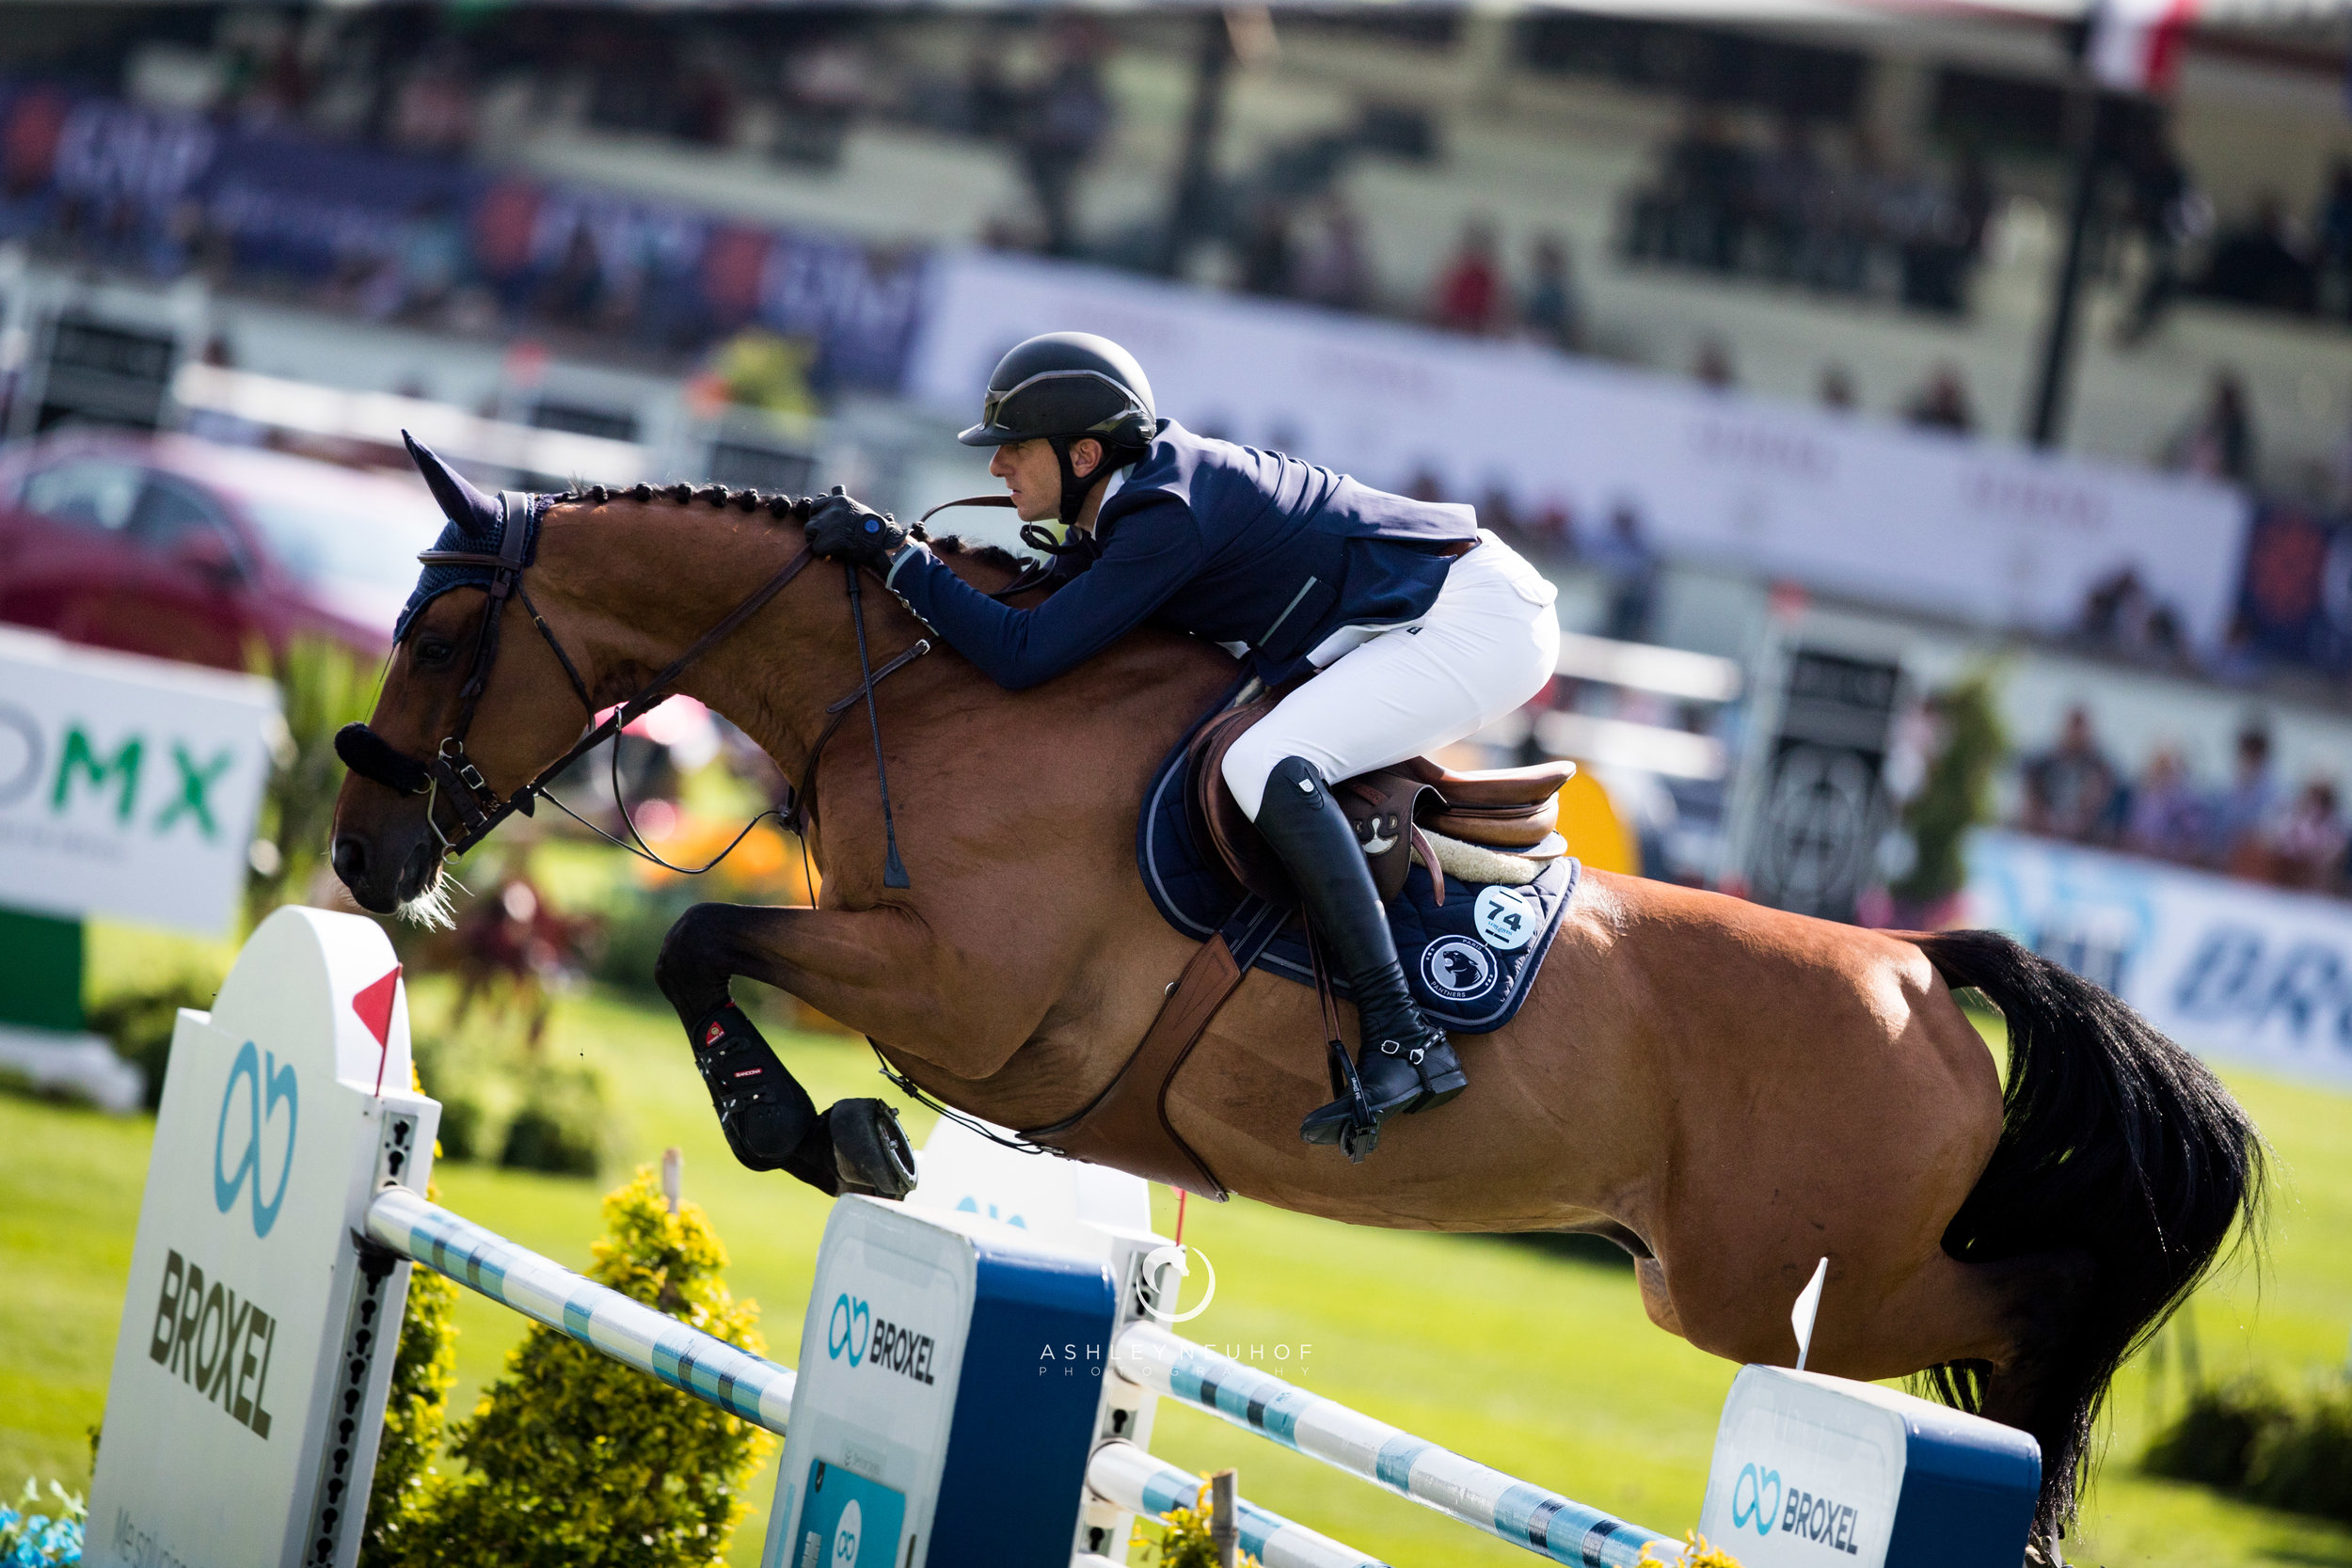 Gregory Wathelet and Qualido 3 at Global Champions League of Mexico City 2019. Photo by Ashley Neuhof Photography.